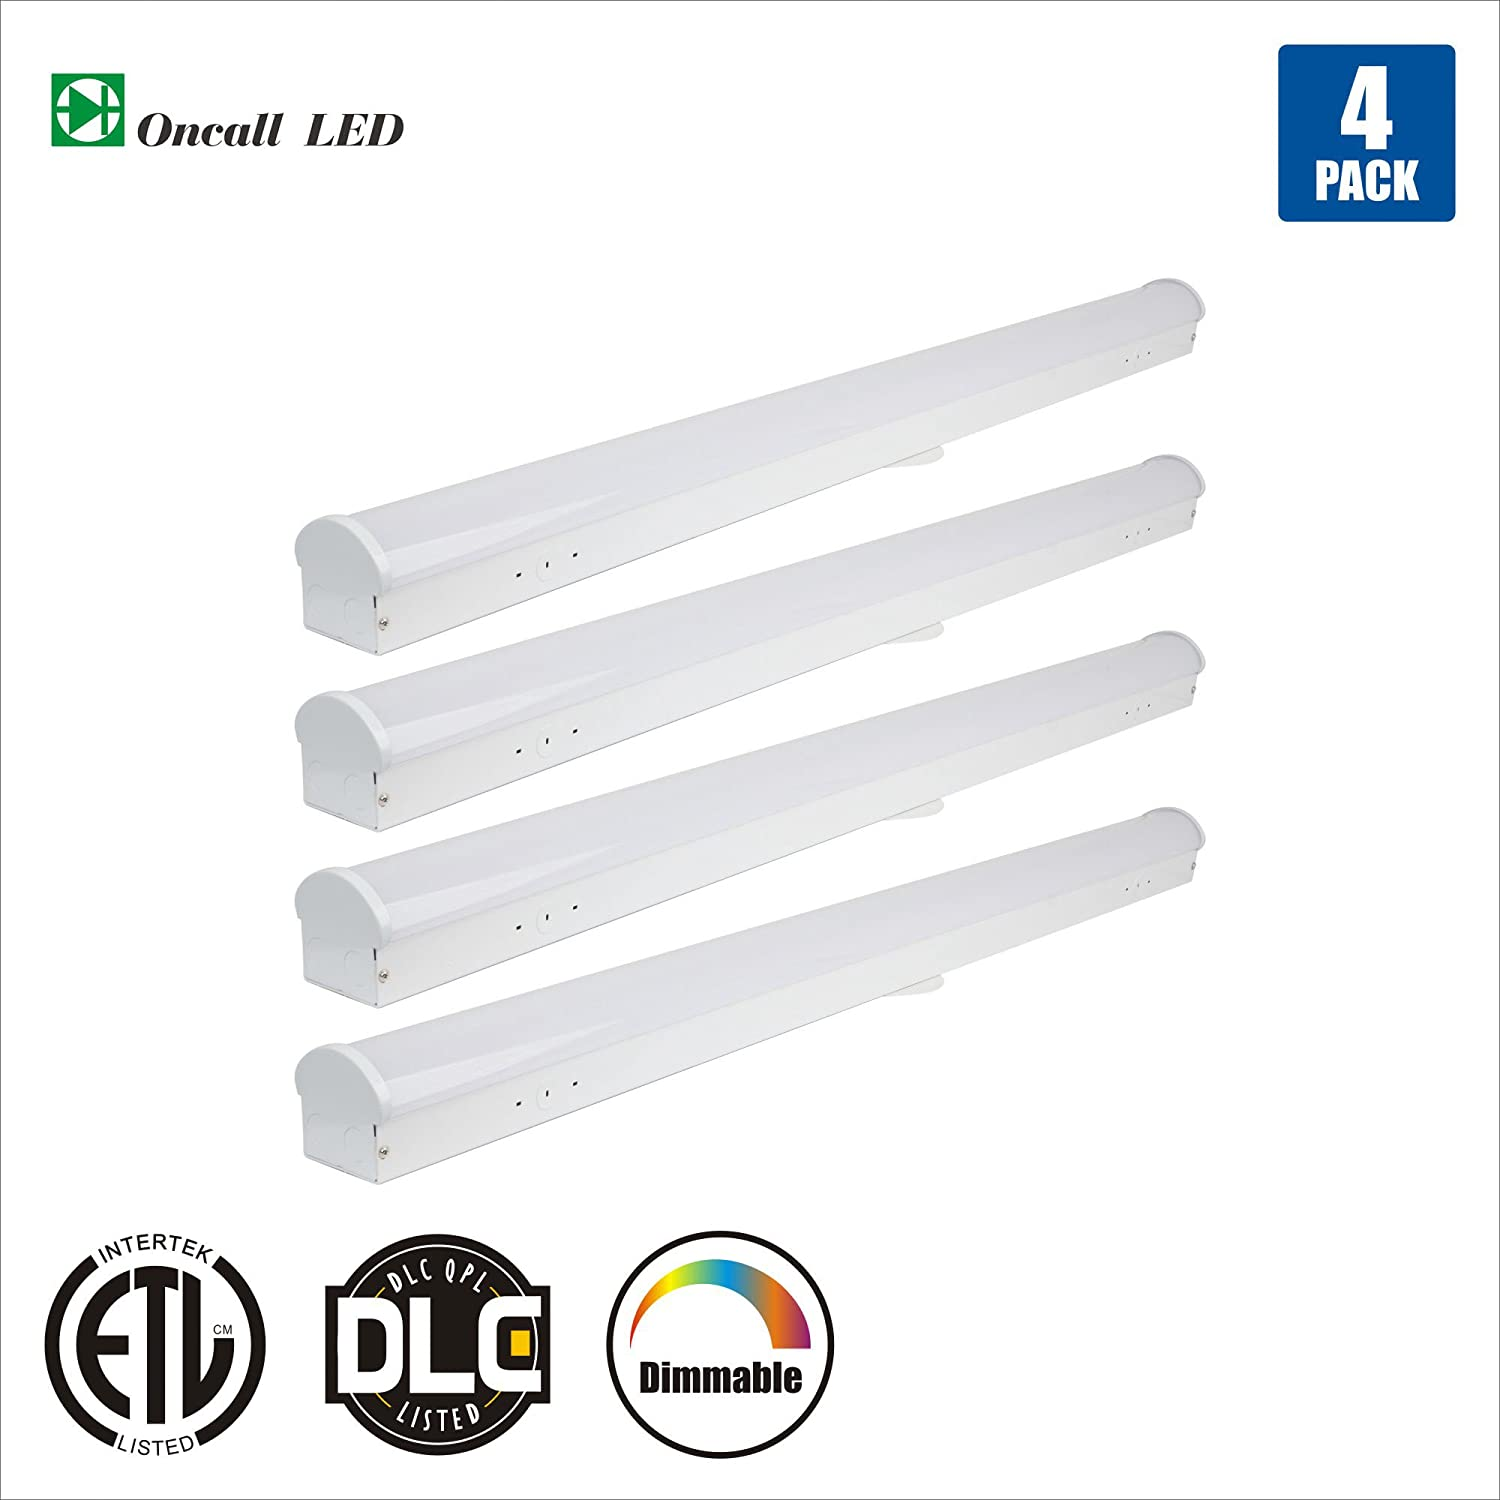 Oncall Led 4ft Linear Light Commercial Shop Light 40w 200w Equiv